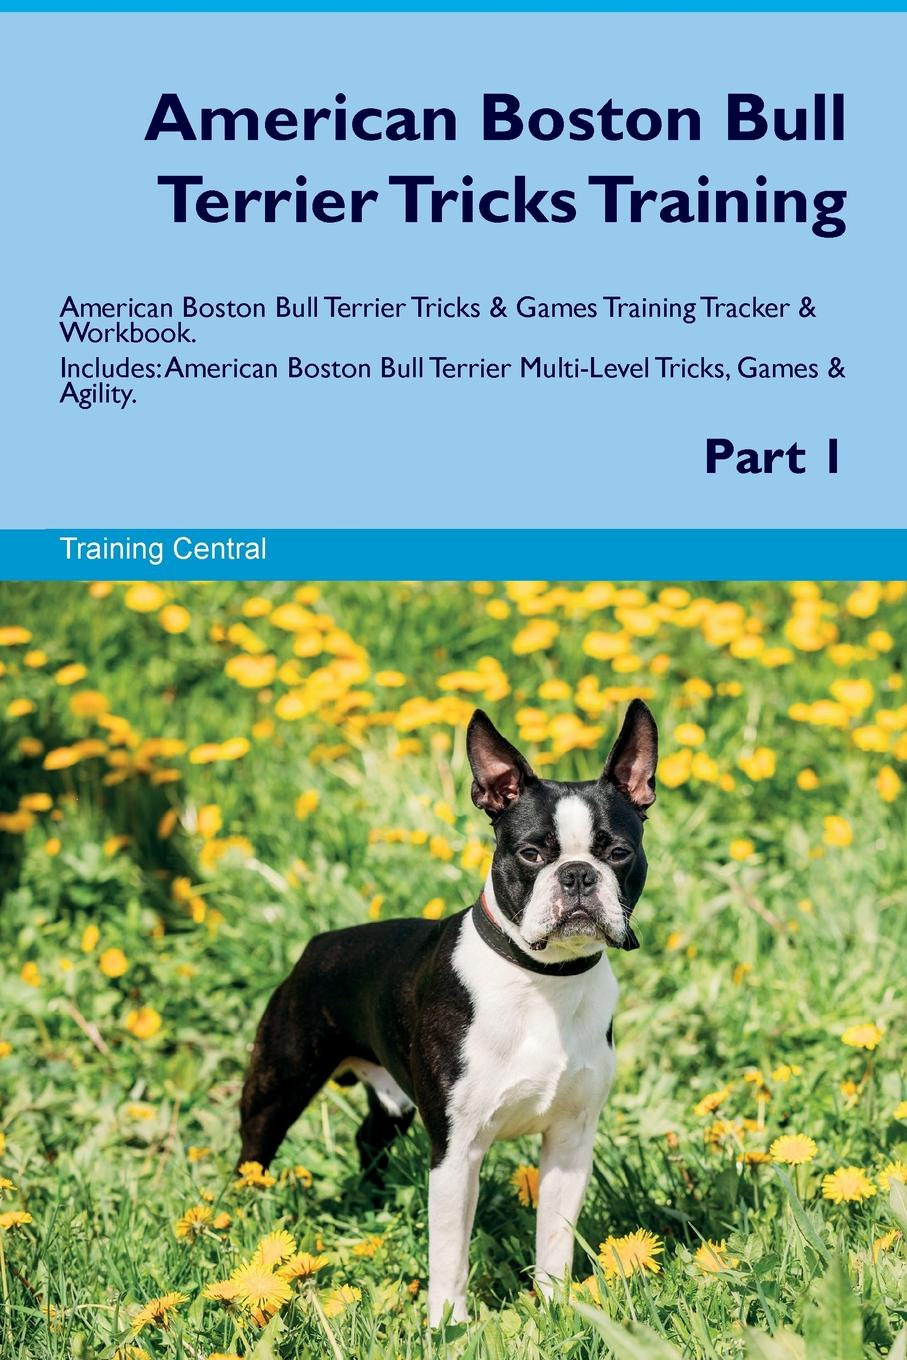 Training Central American Boston Bull Terrier Tricks Training American Boston Bull Terrier Tricks & Games Training Tracker & Workbook. Includes. American Boston Bull Terrier Multi-Level Tricks, Games & Agility. Part 1